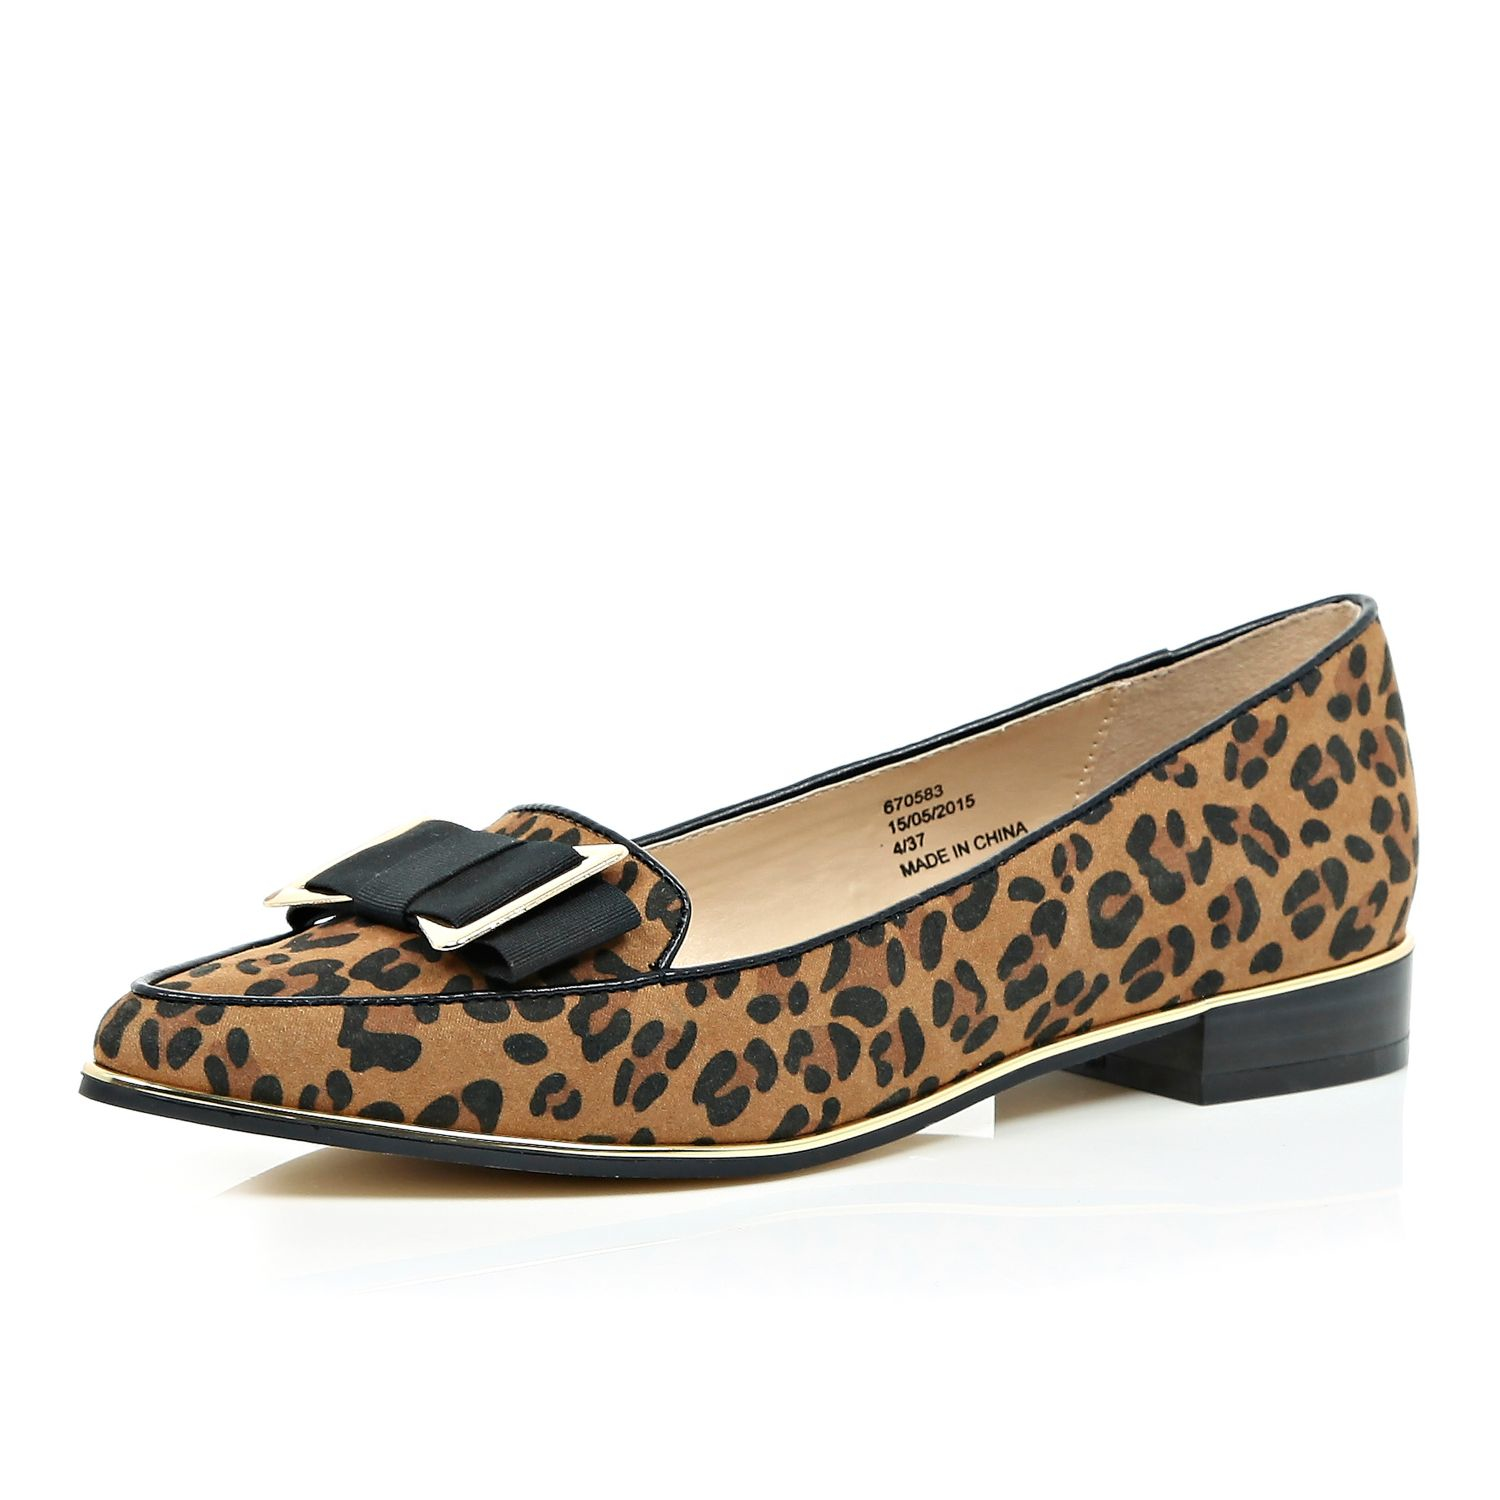 Beautiful, Comfortable, Elegant, Gorgeous Leopard Print Flats Pointy Toe Ankle Strap Flat Shoes you best choice for Work, School, Date, Big day, Going out, Hanging out -TOP Design by FSJ5/5(5).